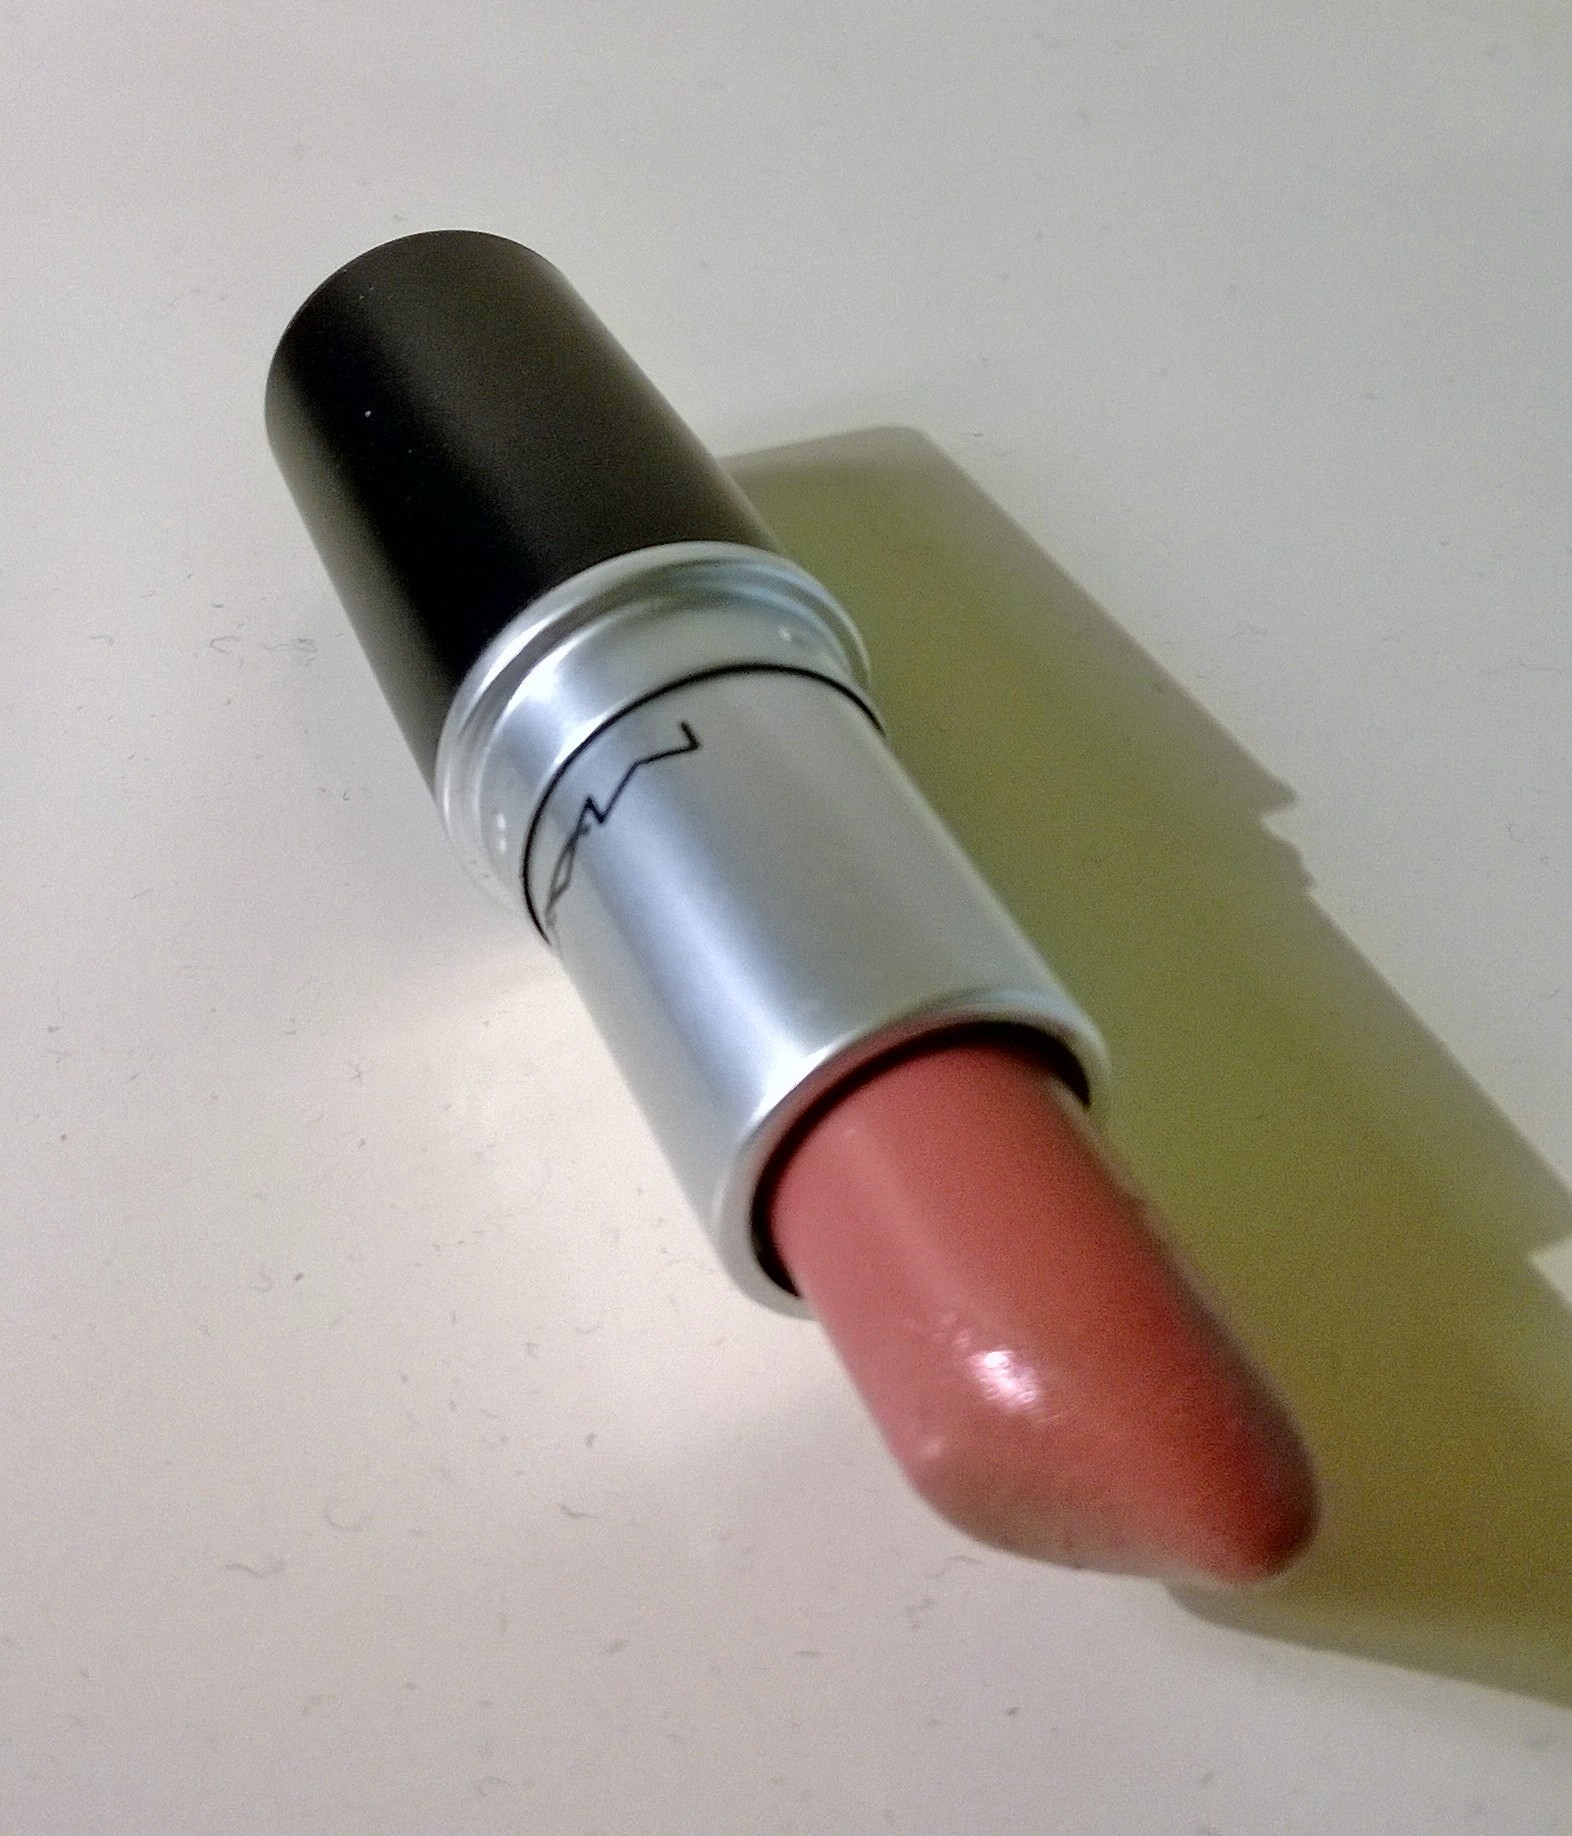 MAC LIPSTICK IN MODESTY: REVIEW AND PICTURES   Ah Sure Tis Lovely